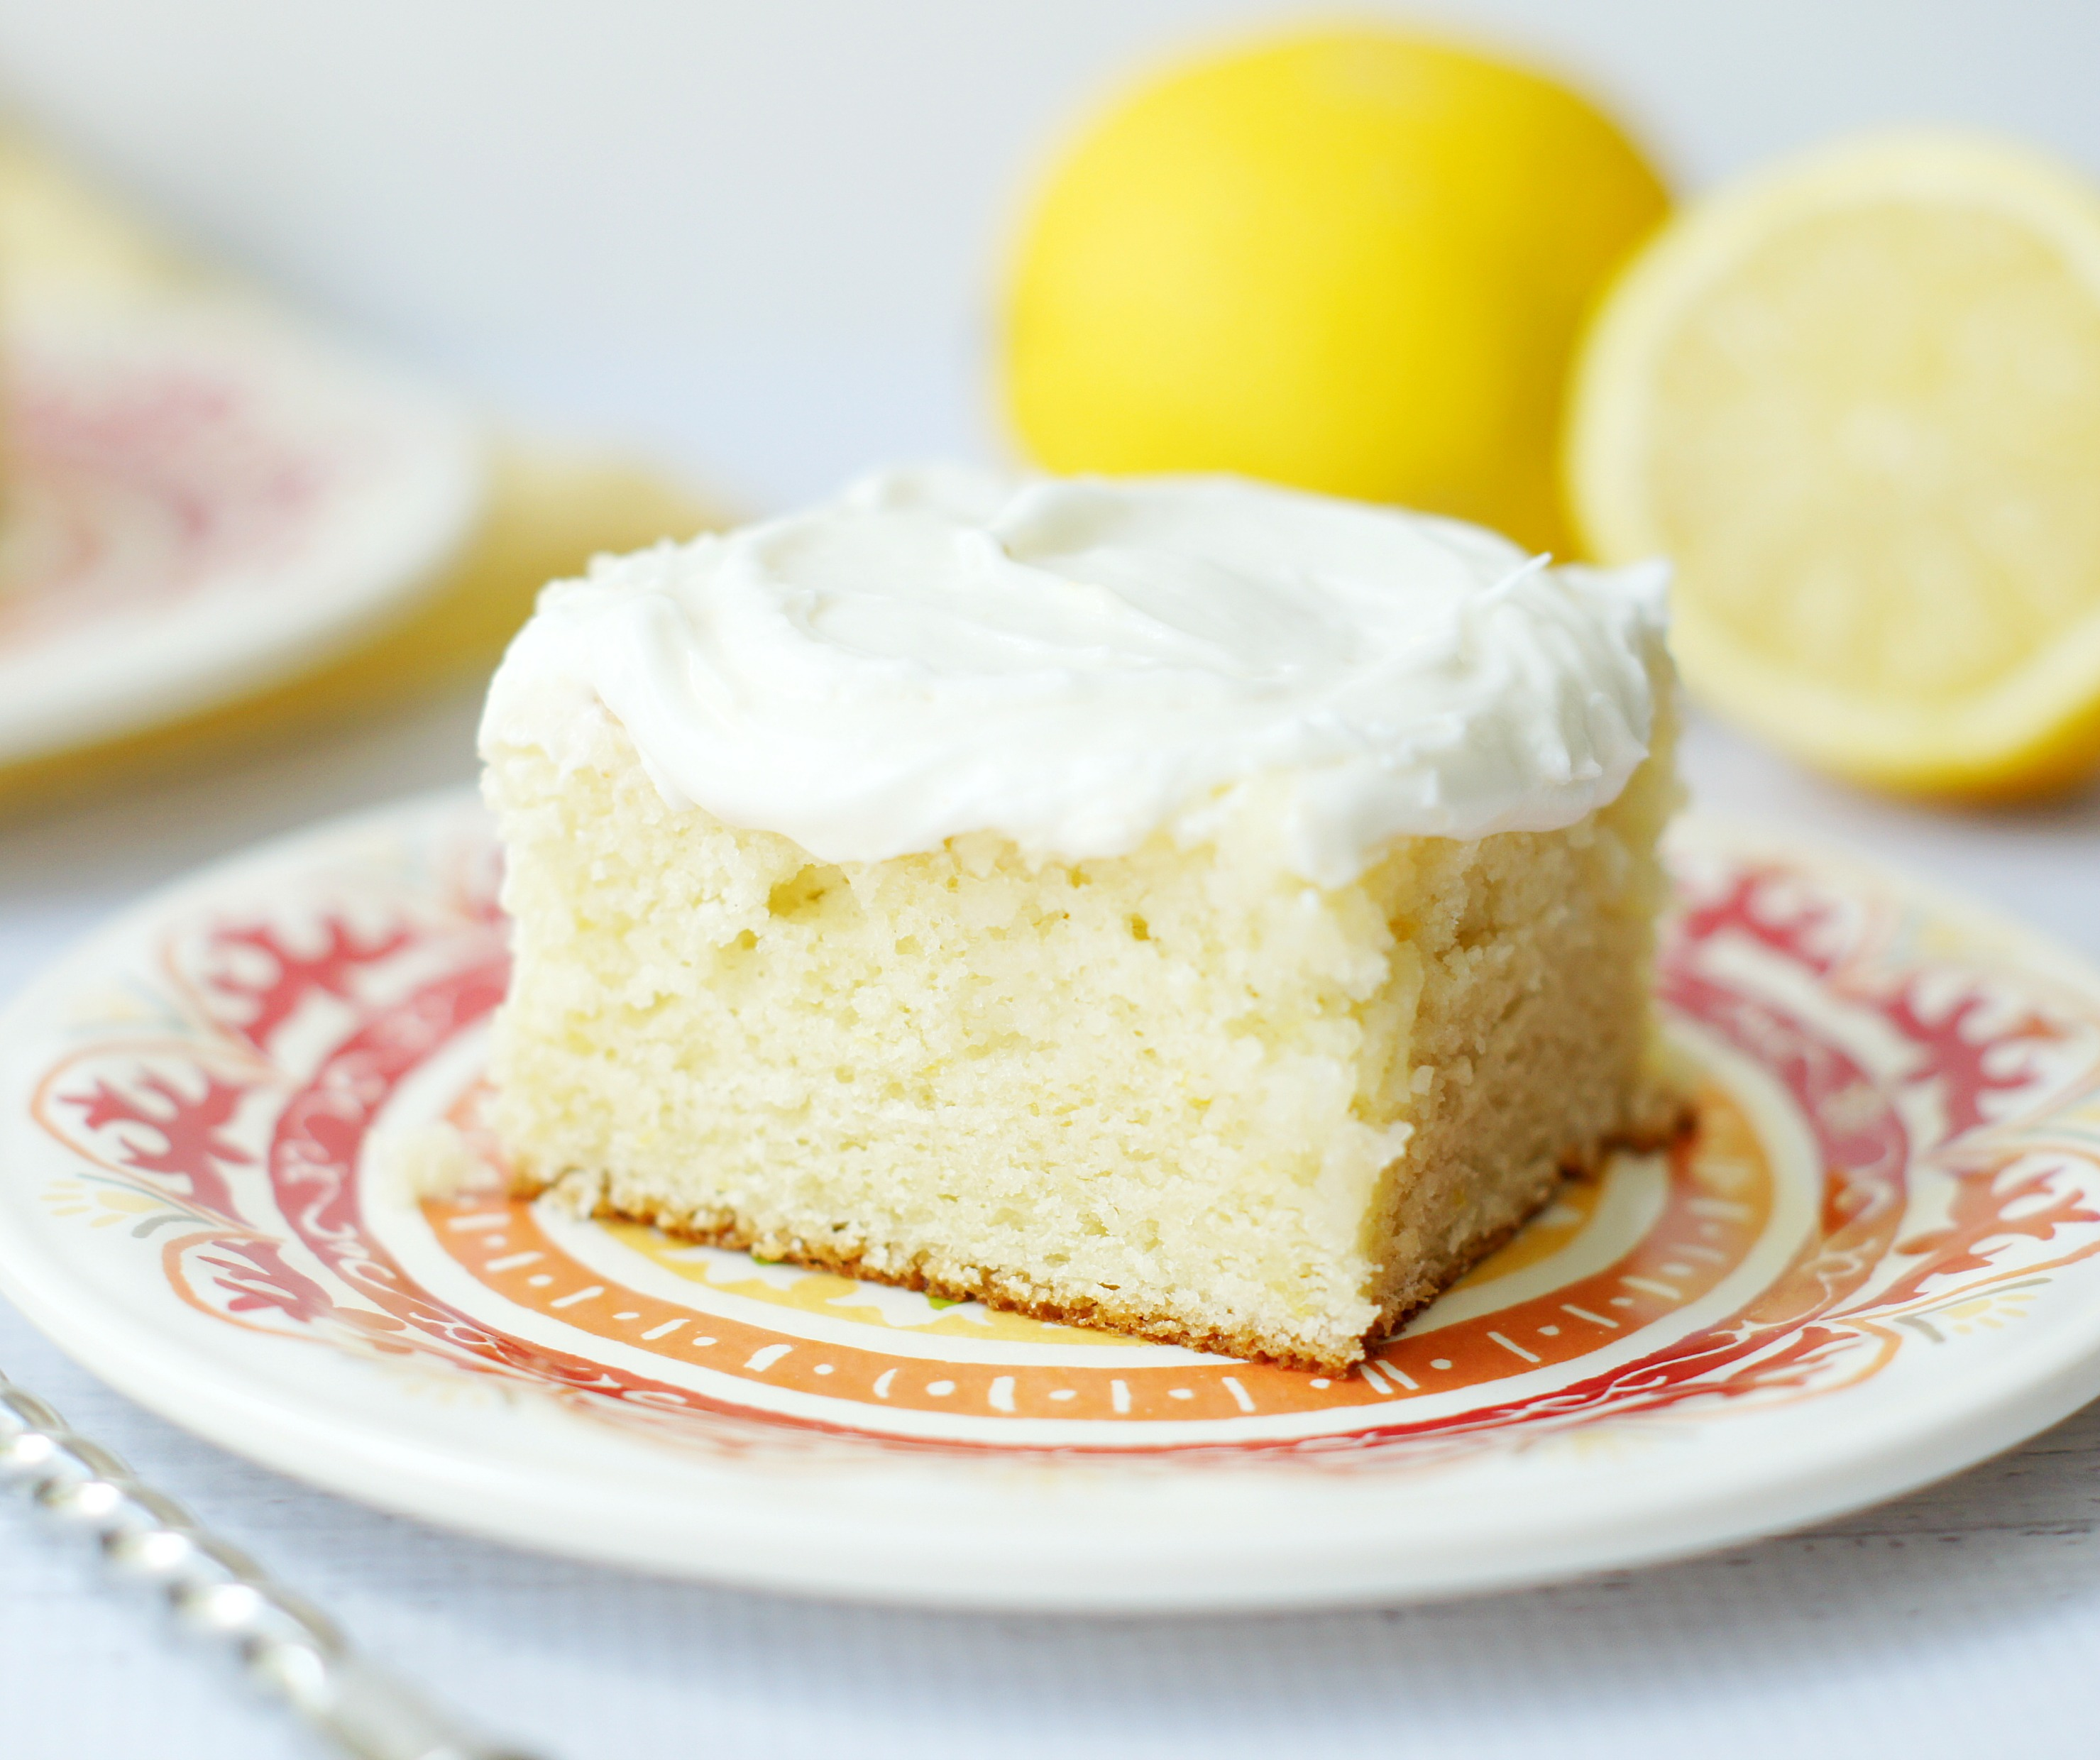 Lemon Cake With Sour Cream Lemon Icing 5 Boys Baker